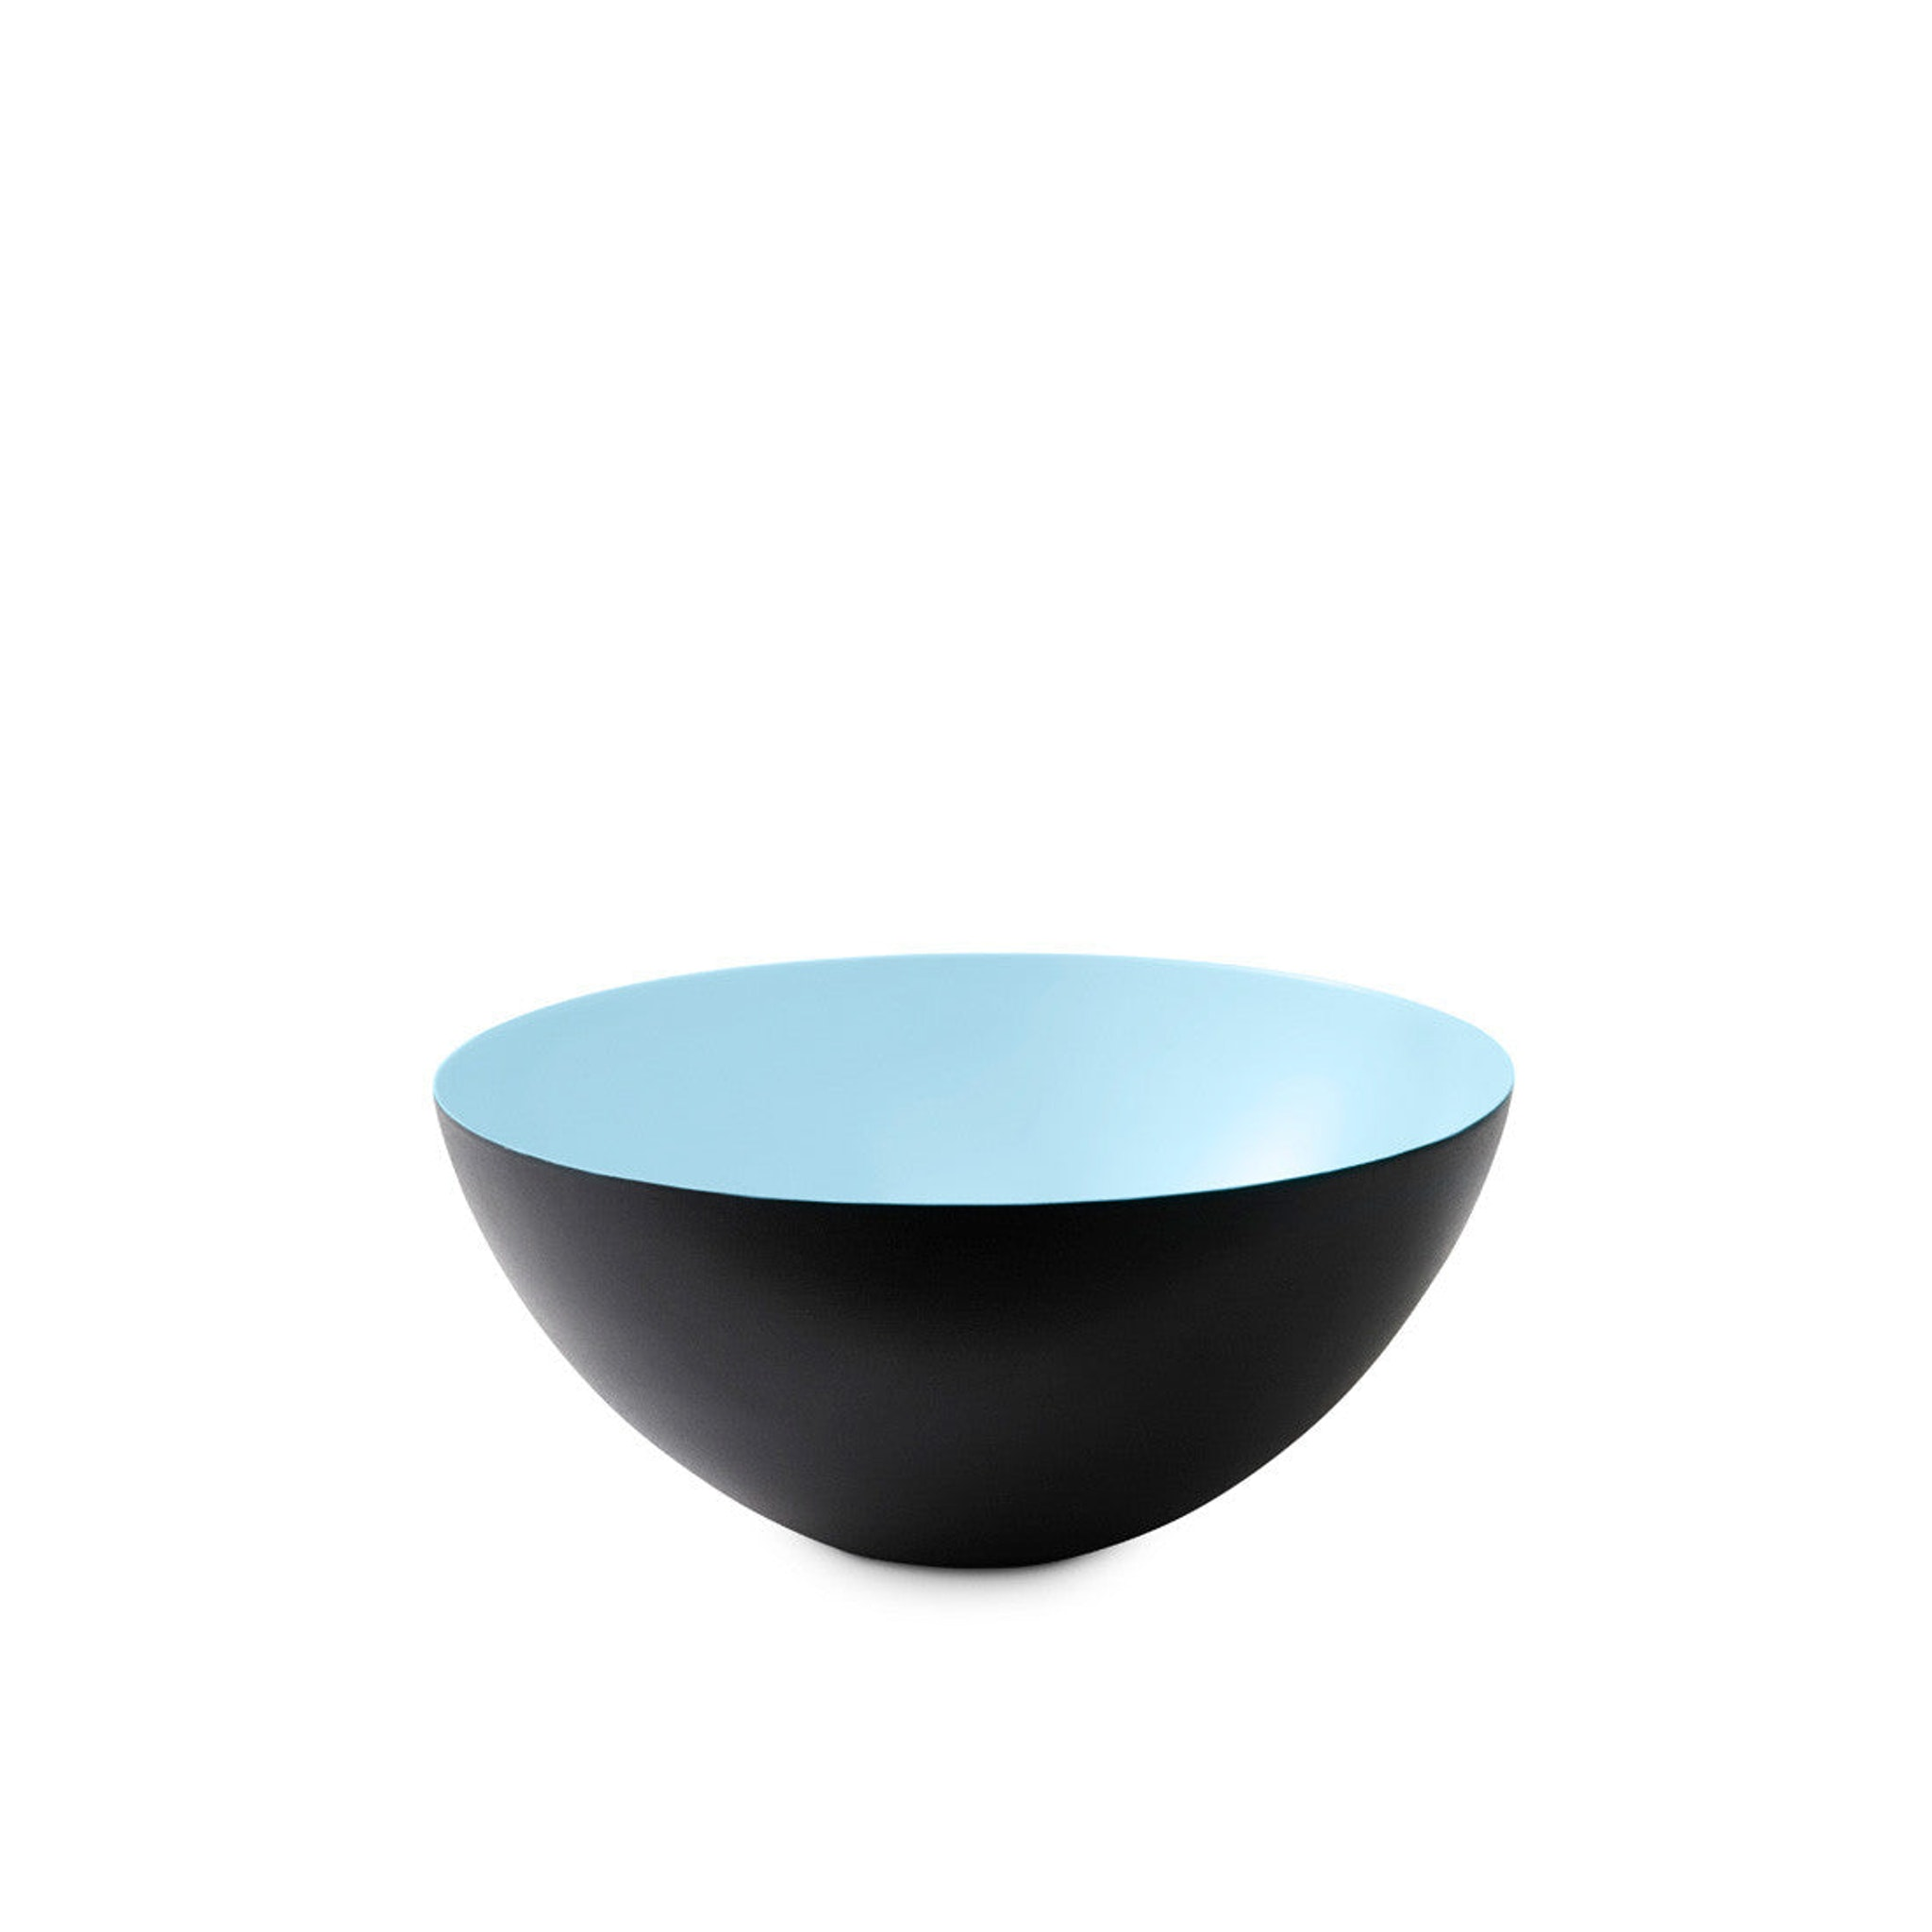 Krenit Bowl Small by Normann Copenhagen